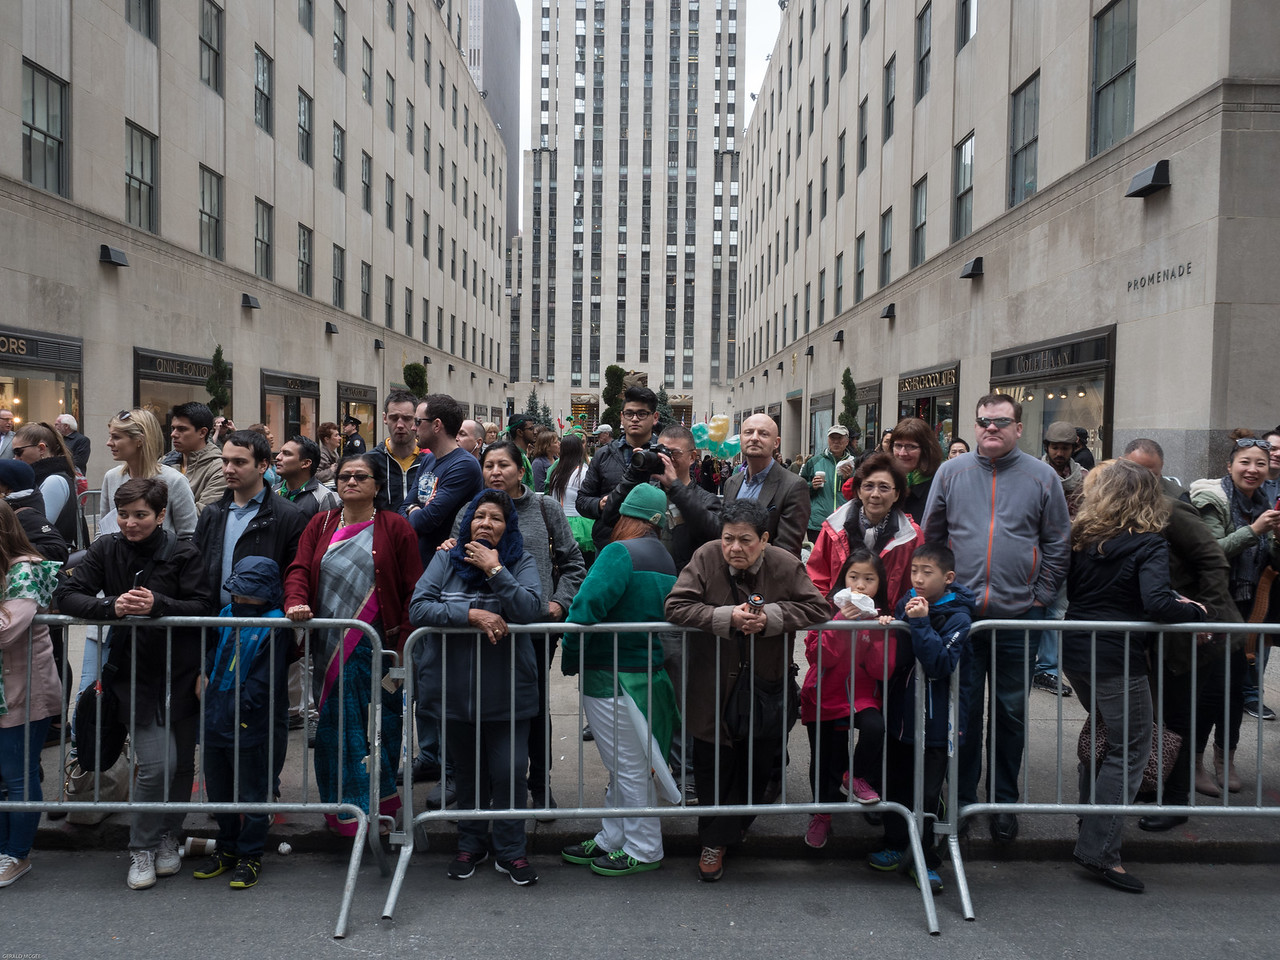 Onlookers at Rockefeller Center